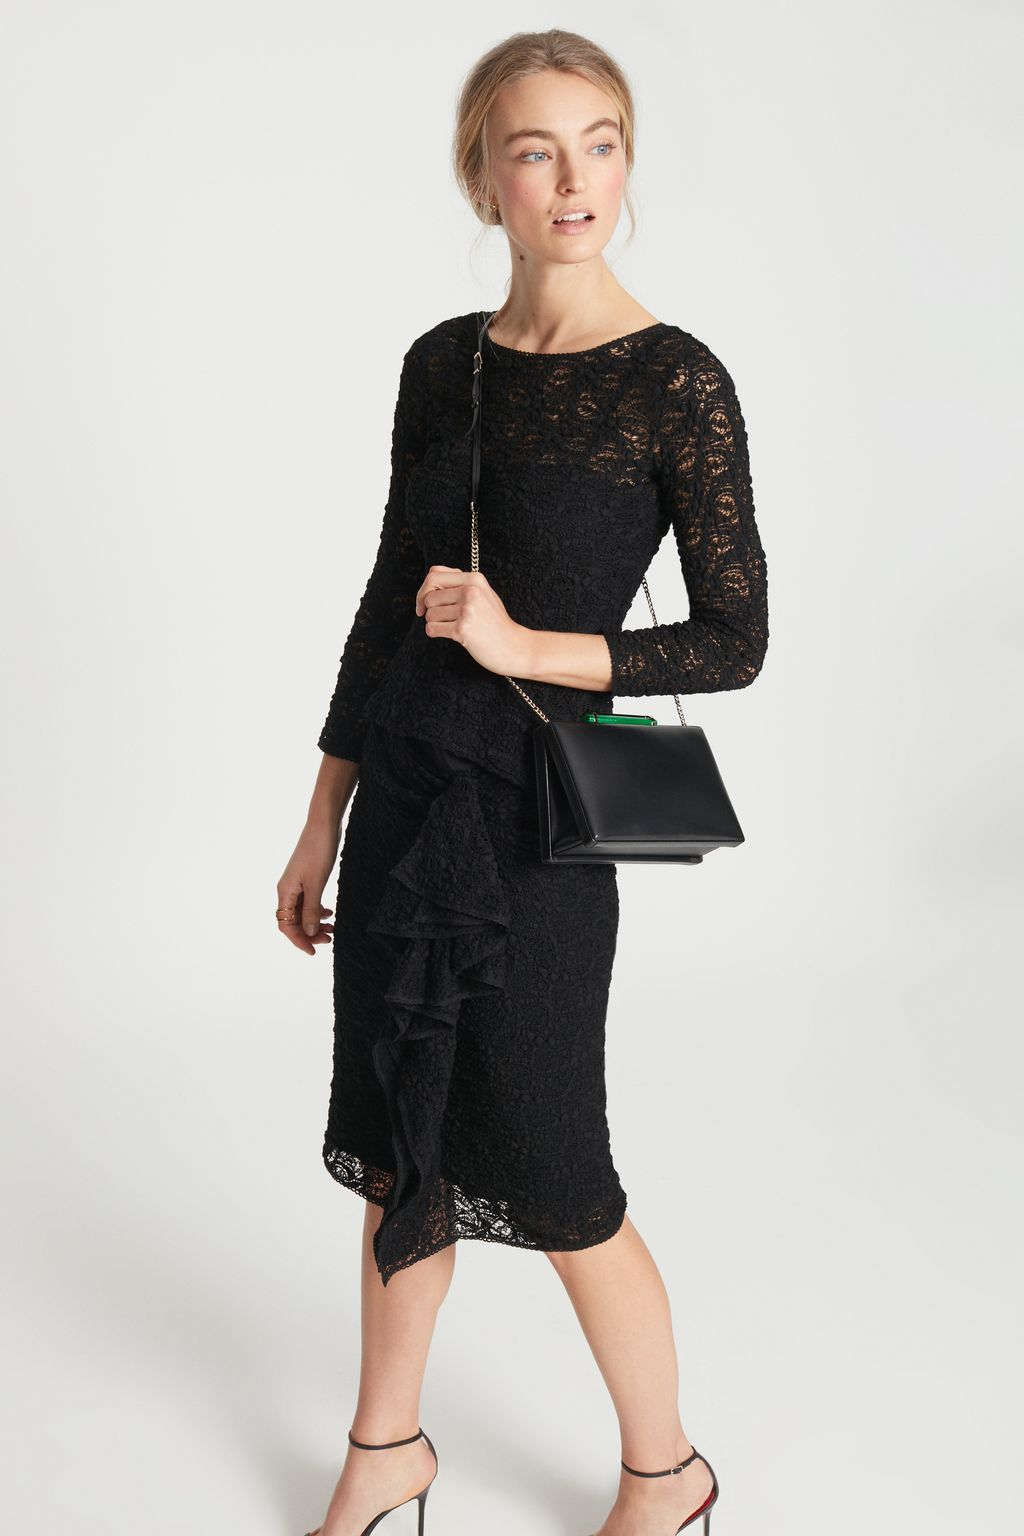 Lace skirt with side ruffle